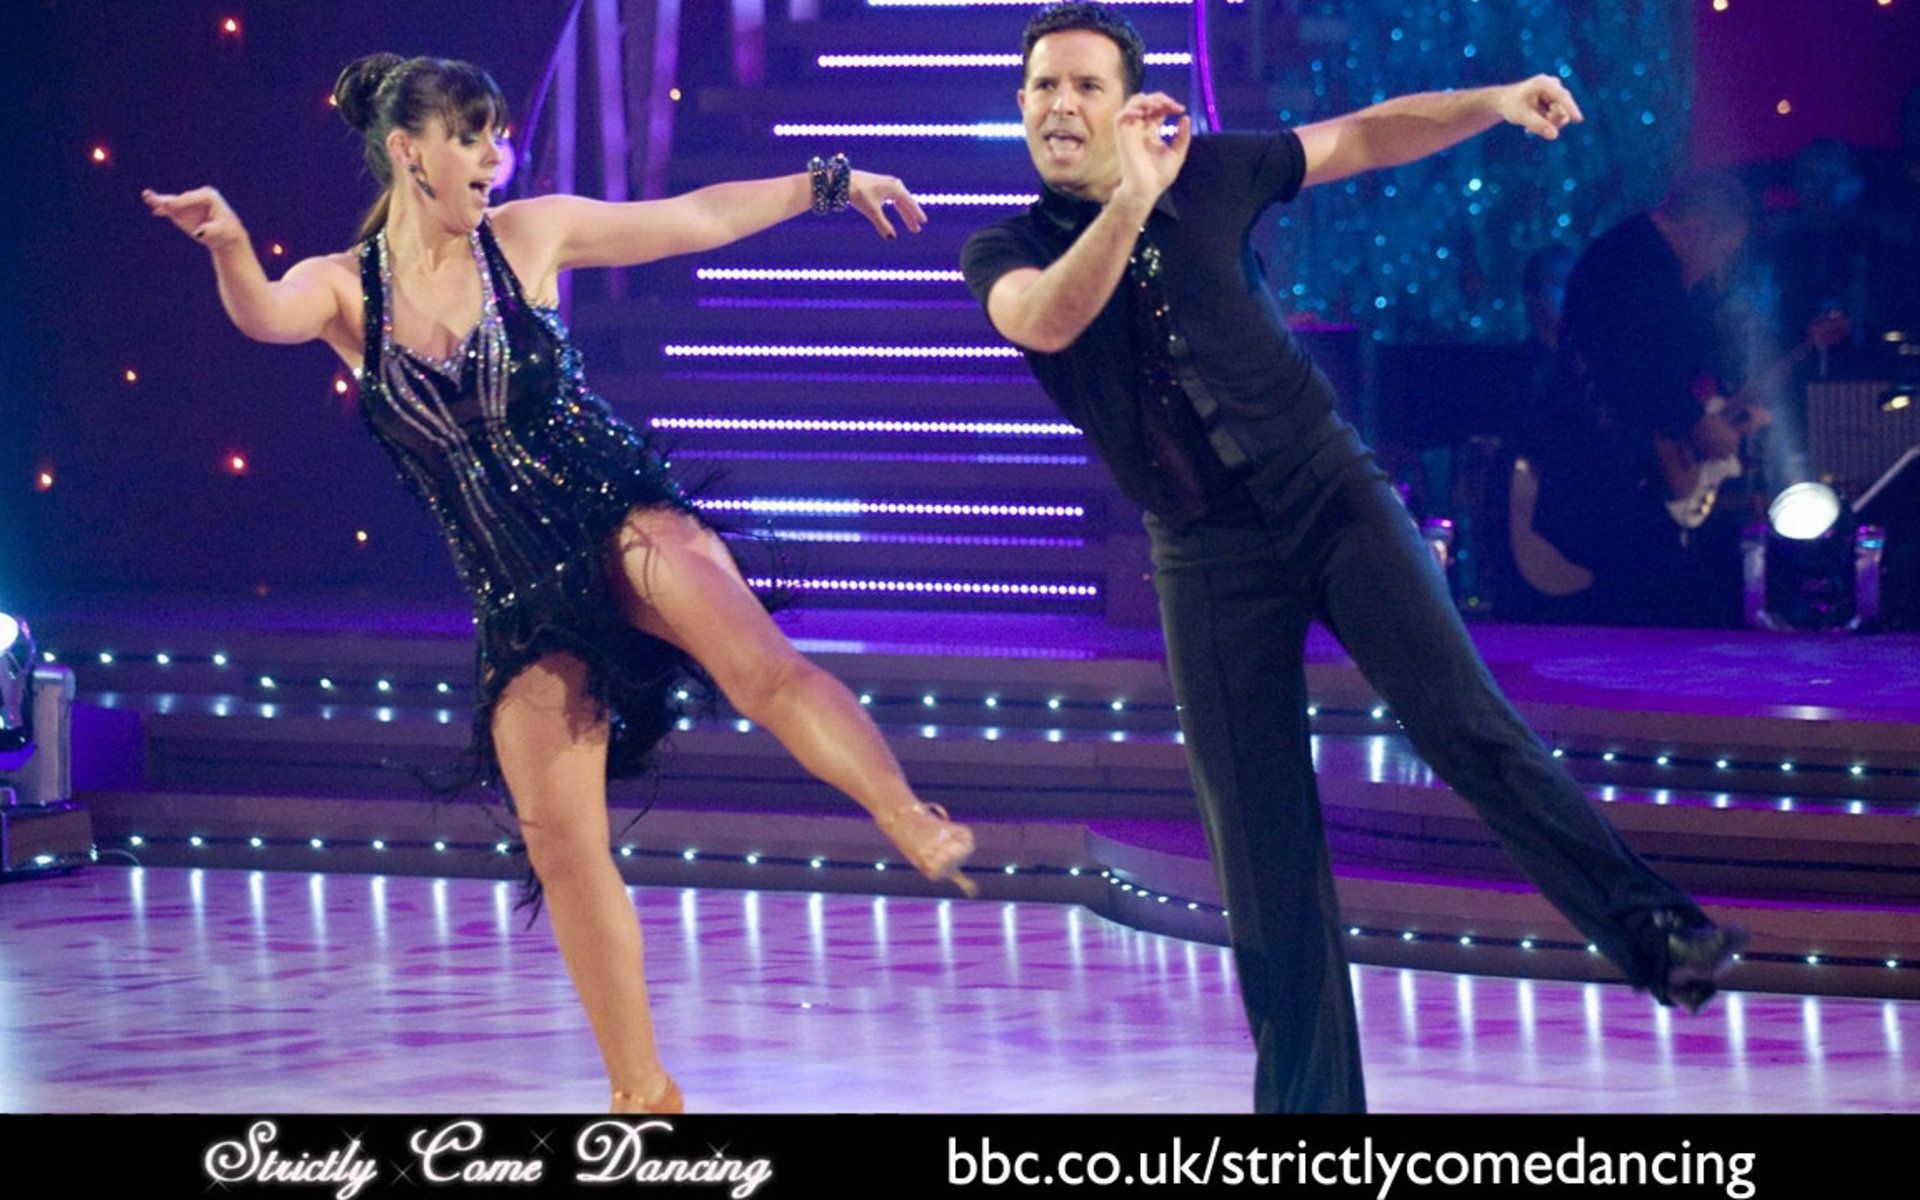 Strictly Come Dancing Photo Jill And Darren Jive Jive Dance Strictly Come Dancing Dance